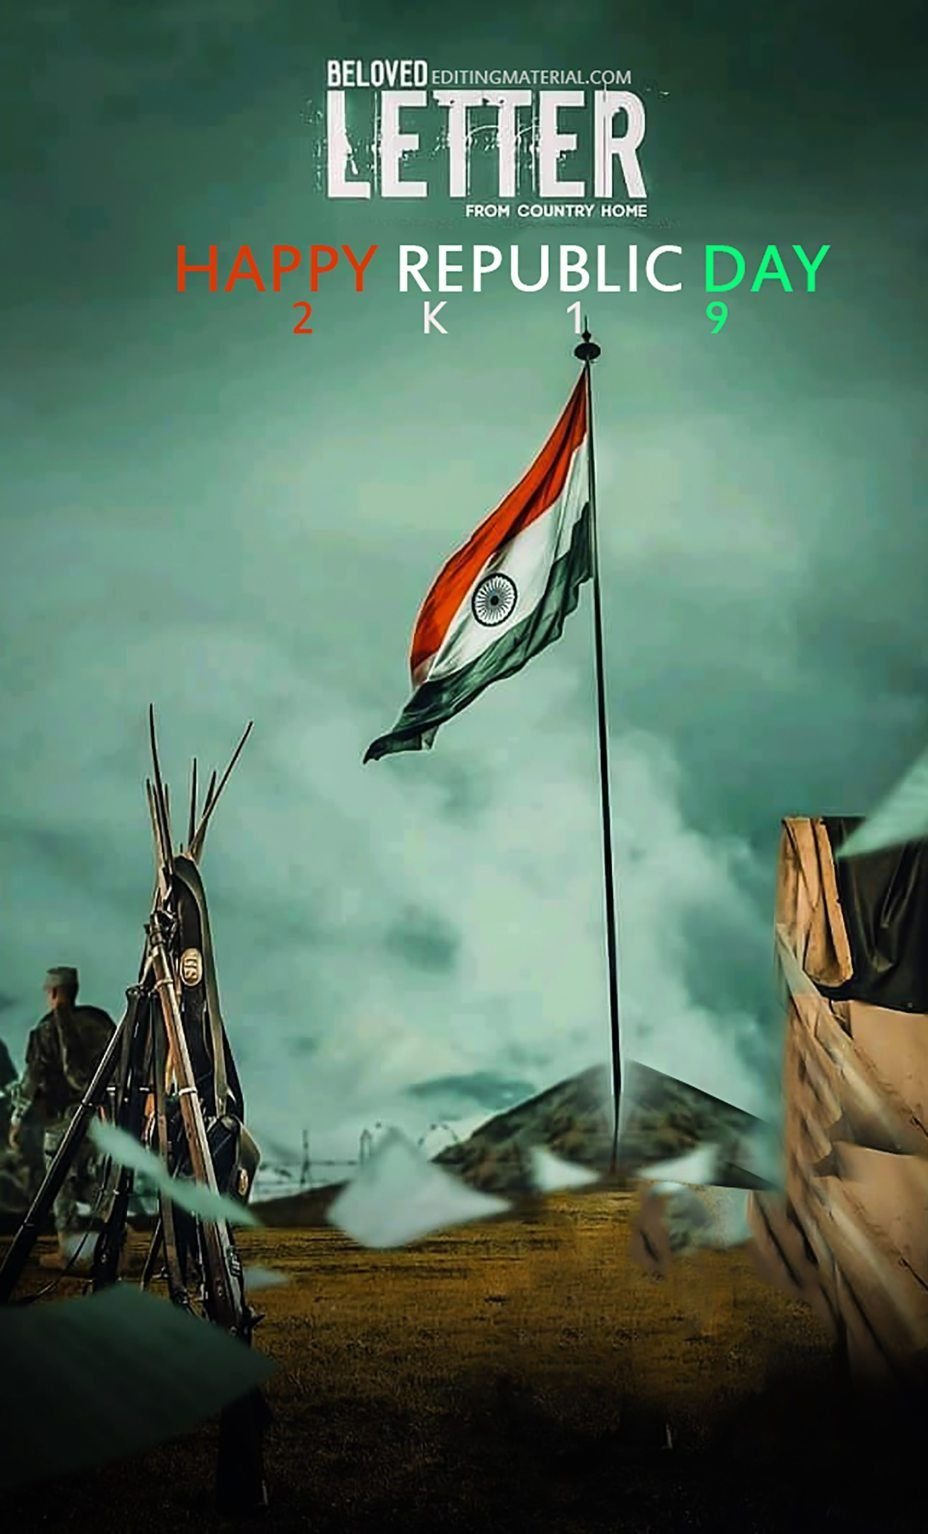 20 Independence Day Images Download August 2019 Cb Editz Independence Day Images Download Independence Day Images Independence Day Images Hd